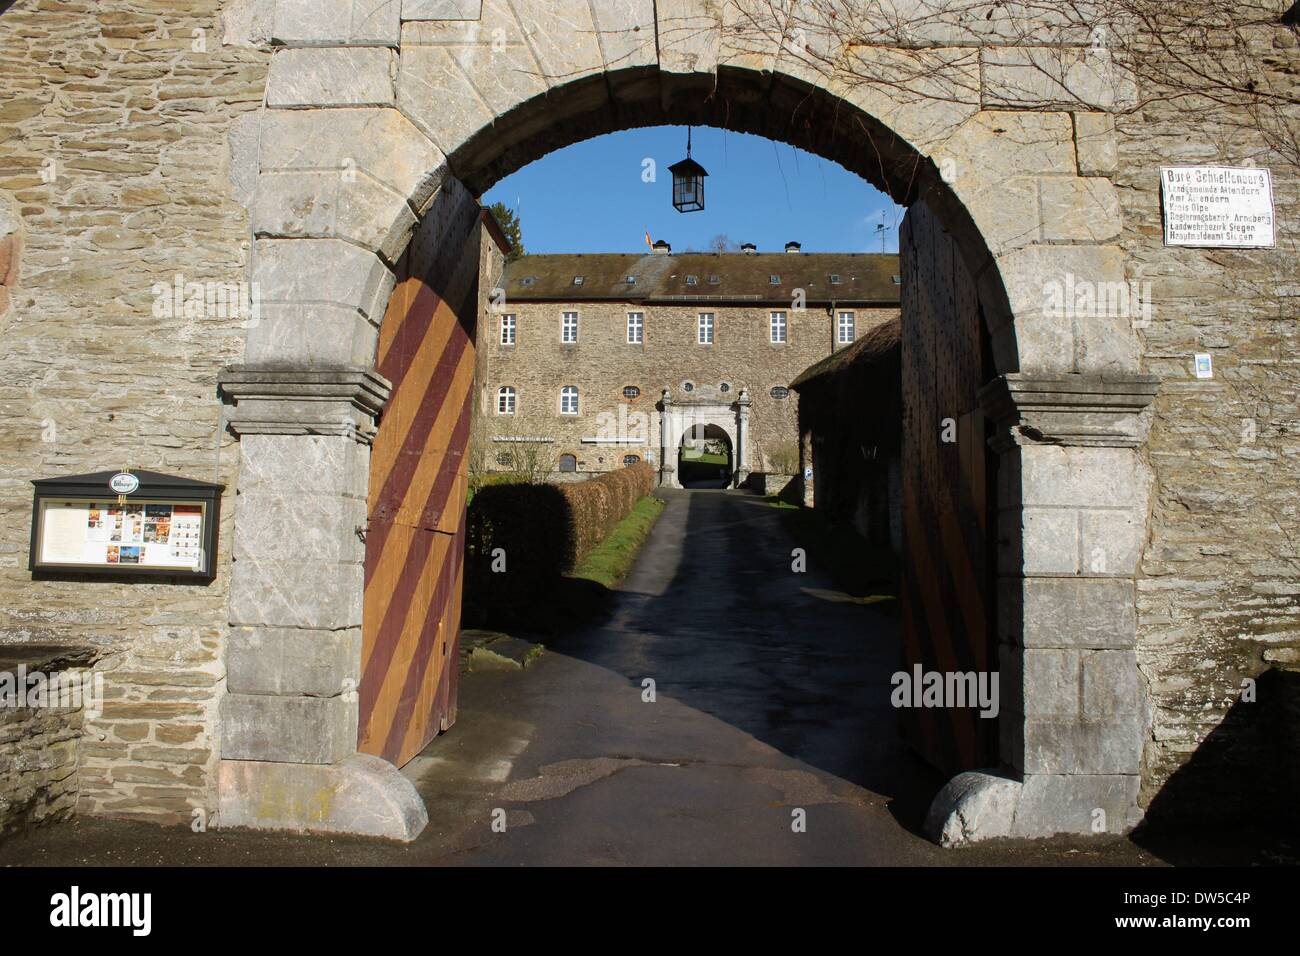 Gates and Floors into the Castle Schnellenberg in Attendorn Stock Photo